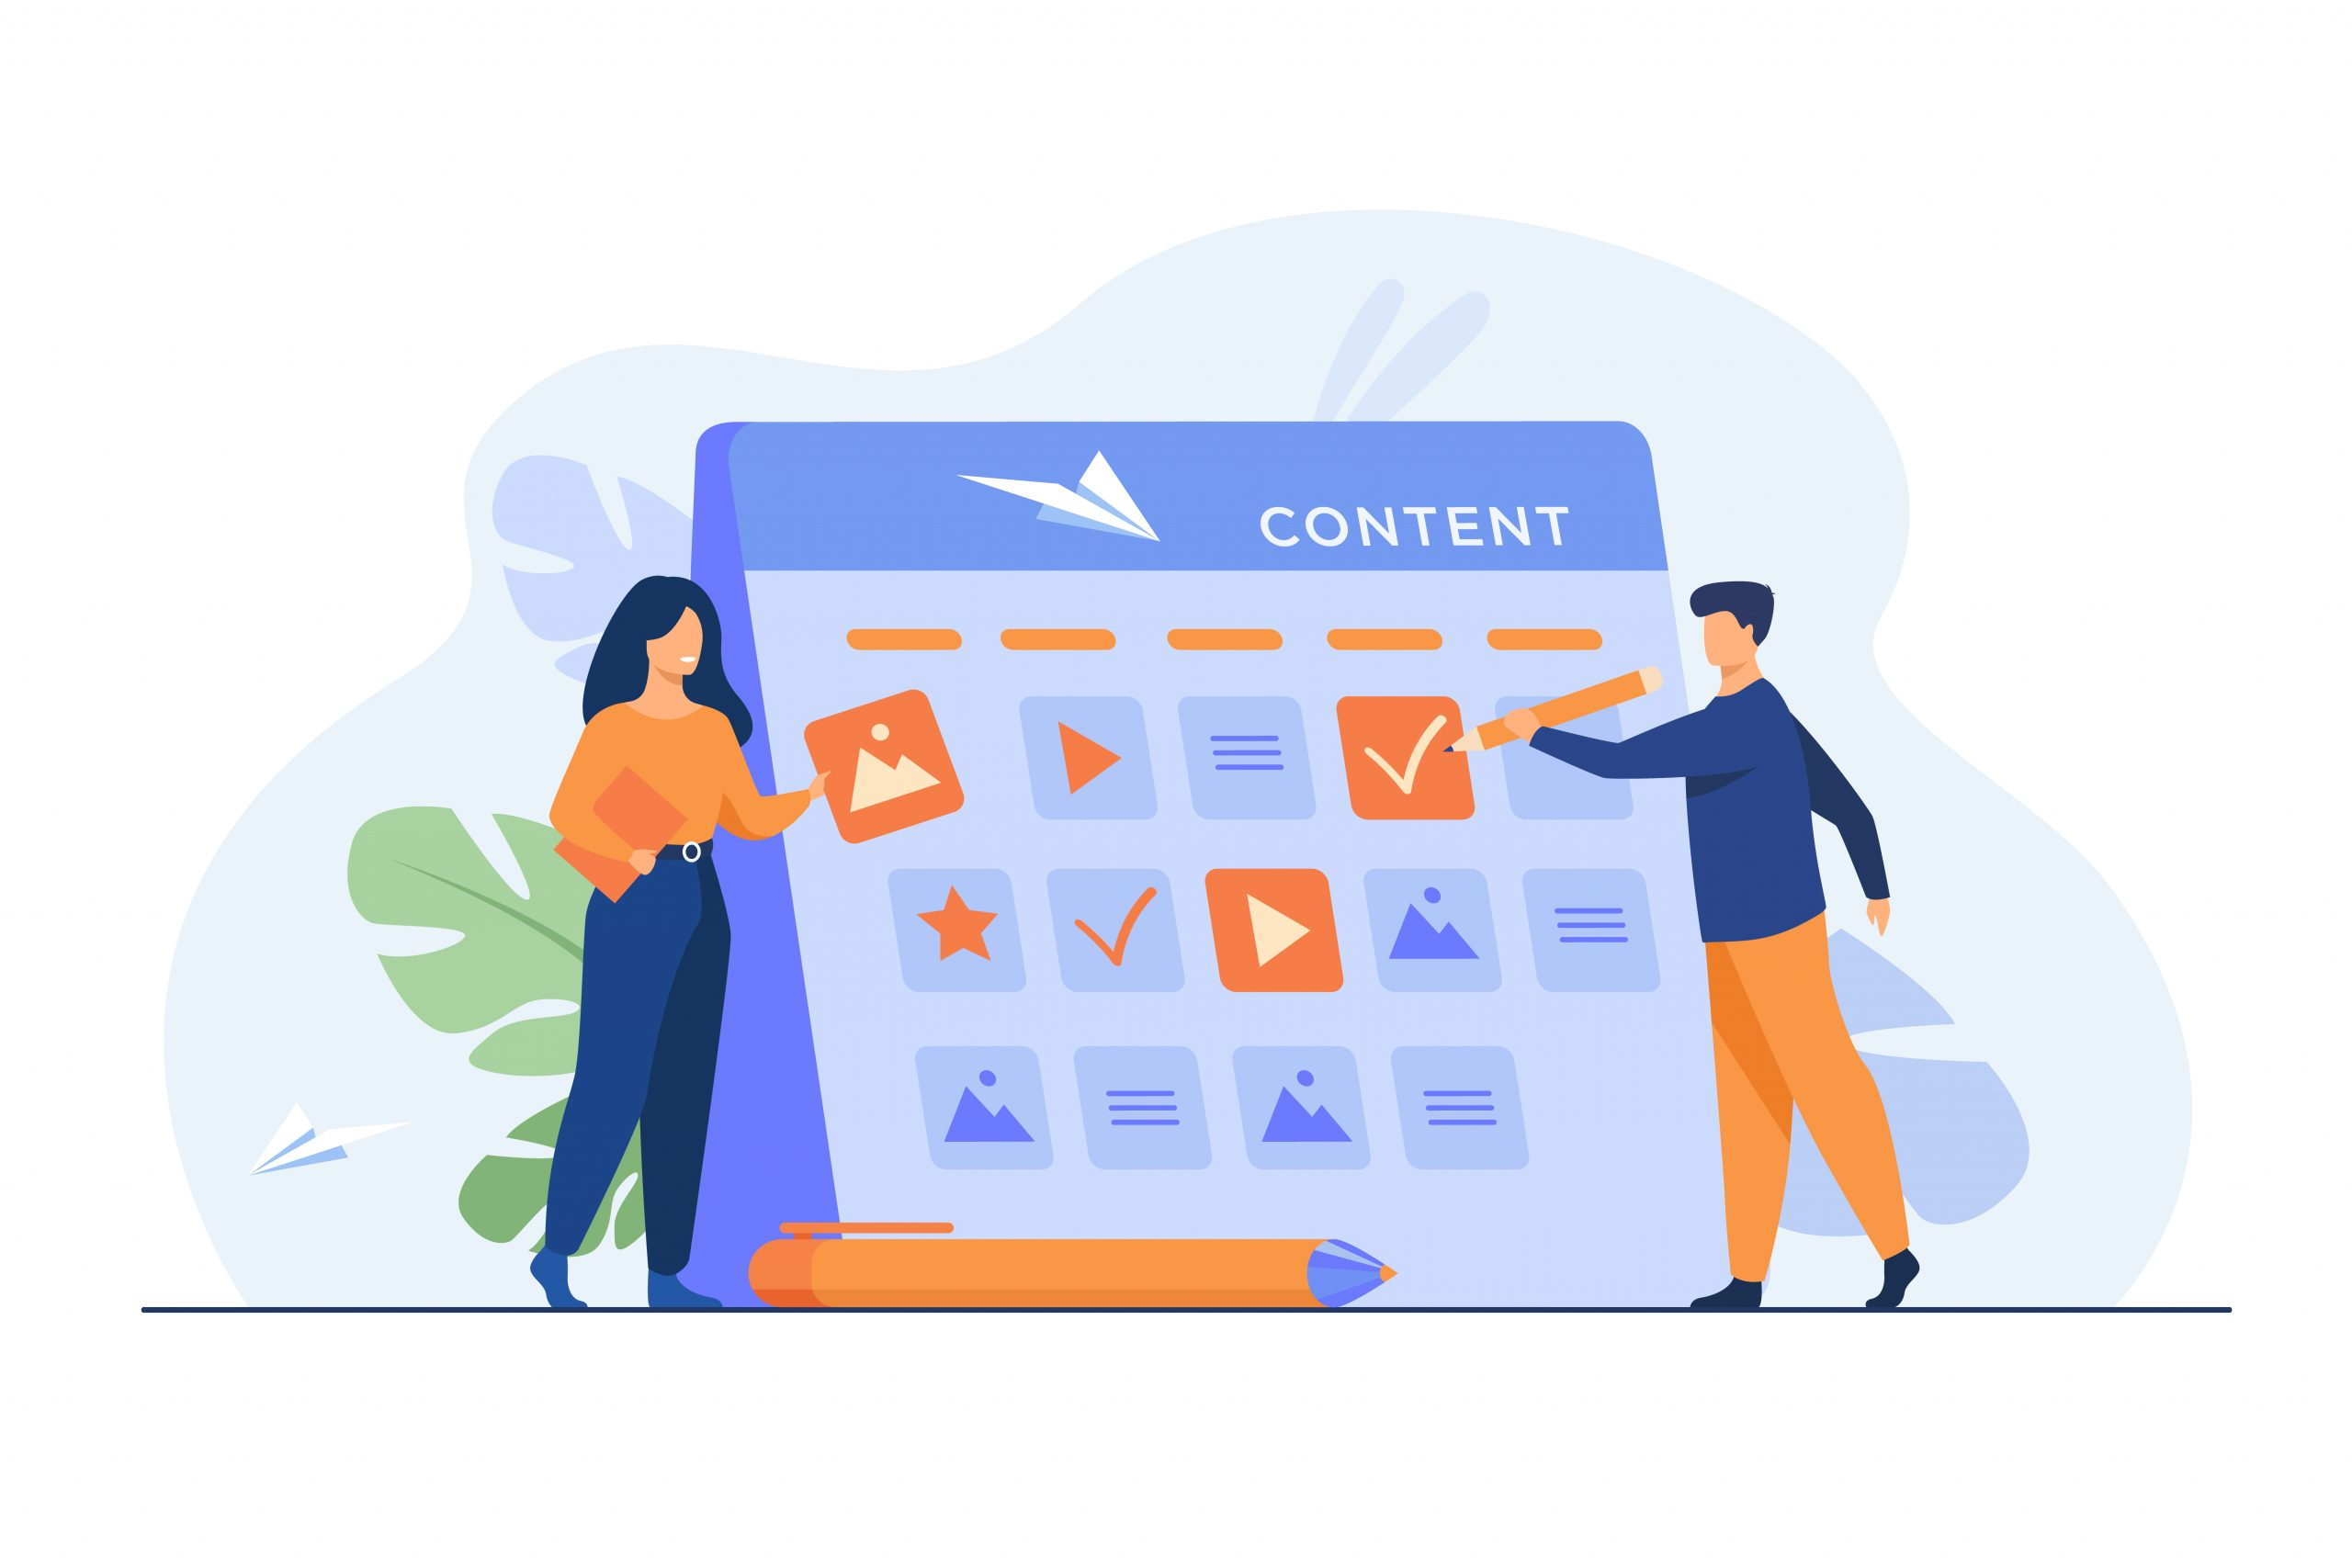 5 Ways to Personalize Your Website Content